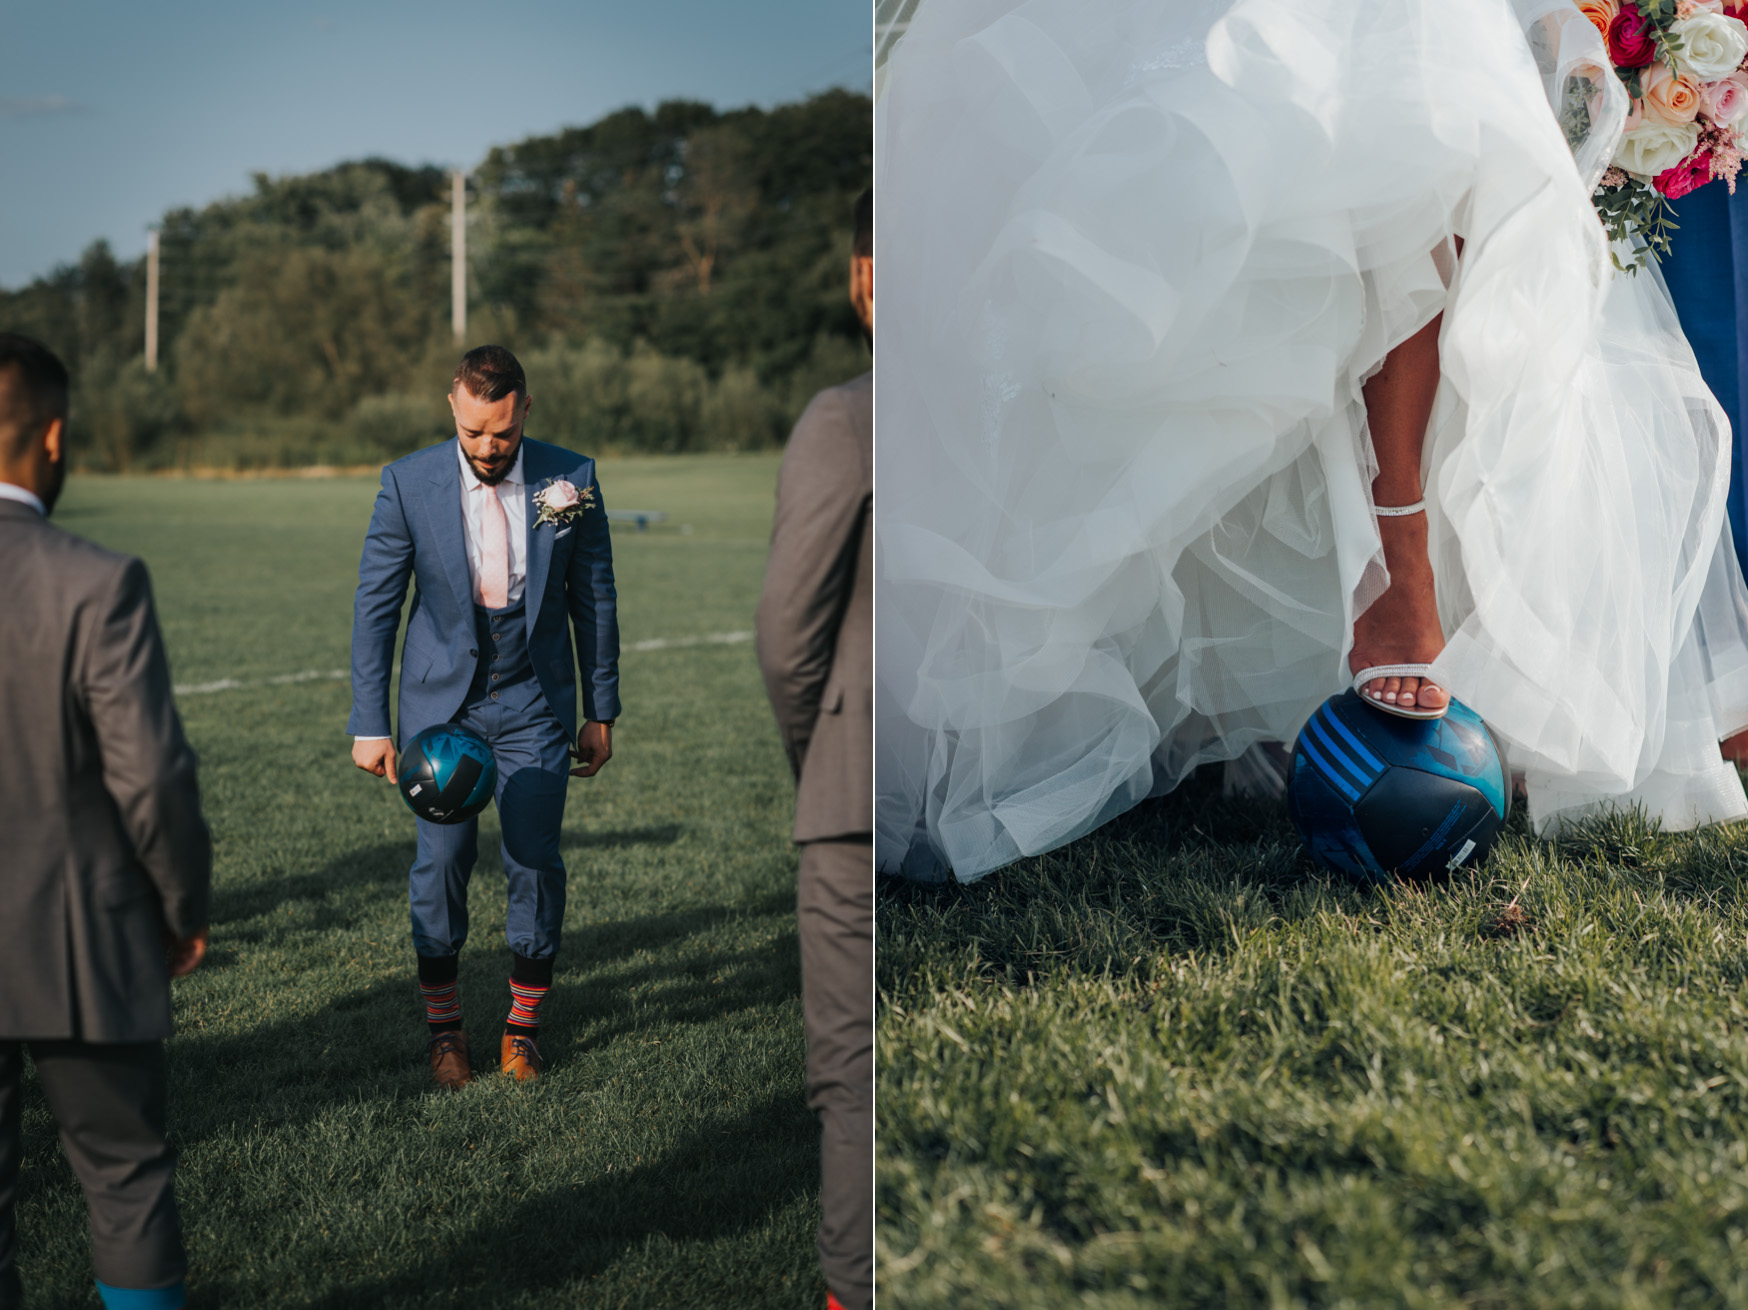 Bride and groom photo on a soccer field in Toronto